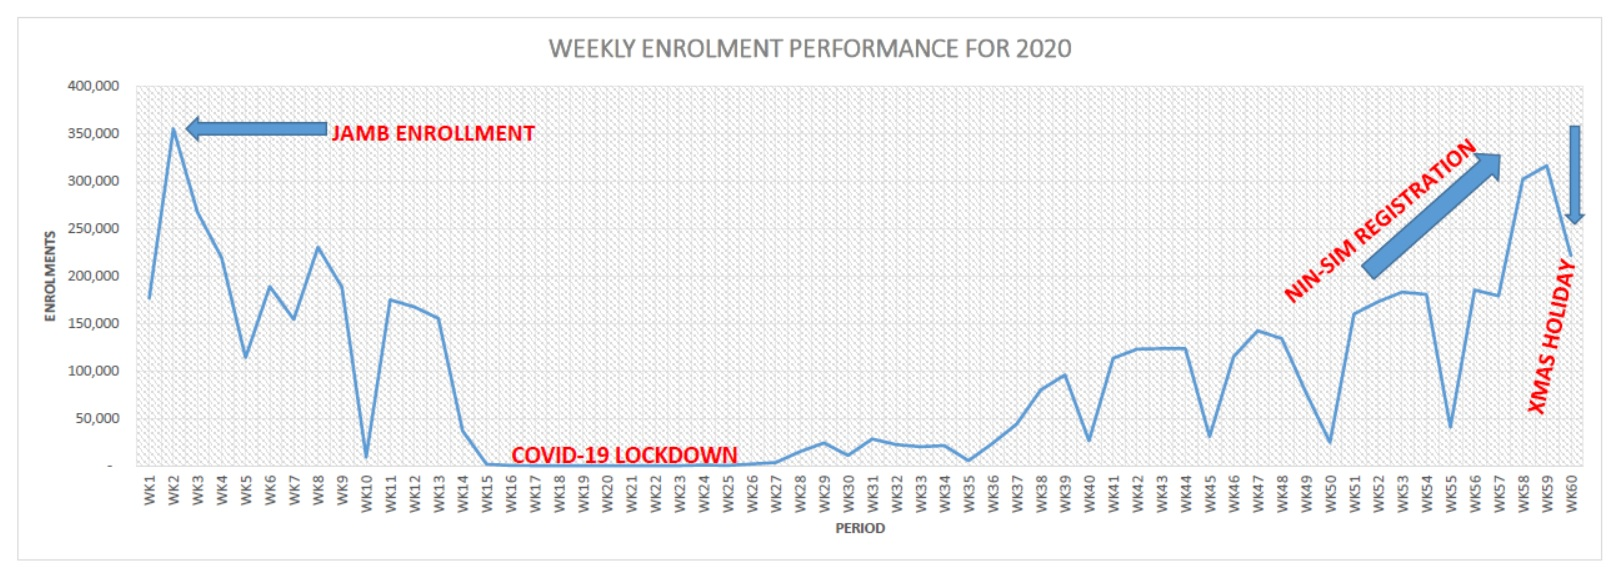 Weekly Enrolment Performance for 2020